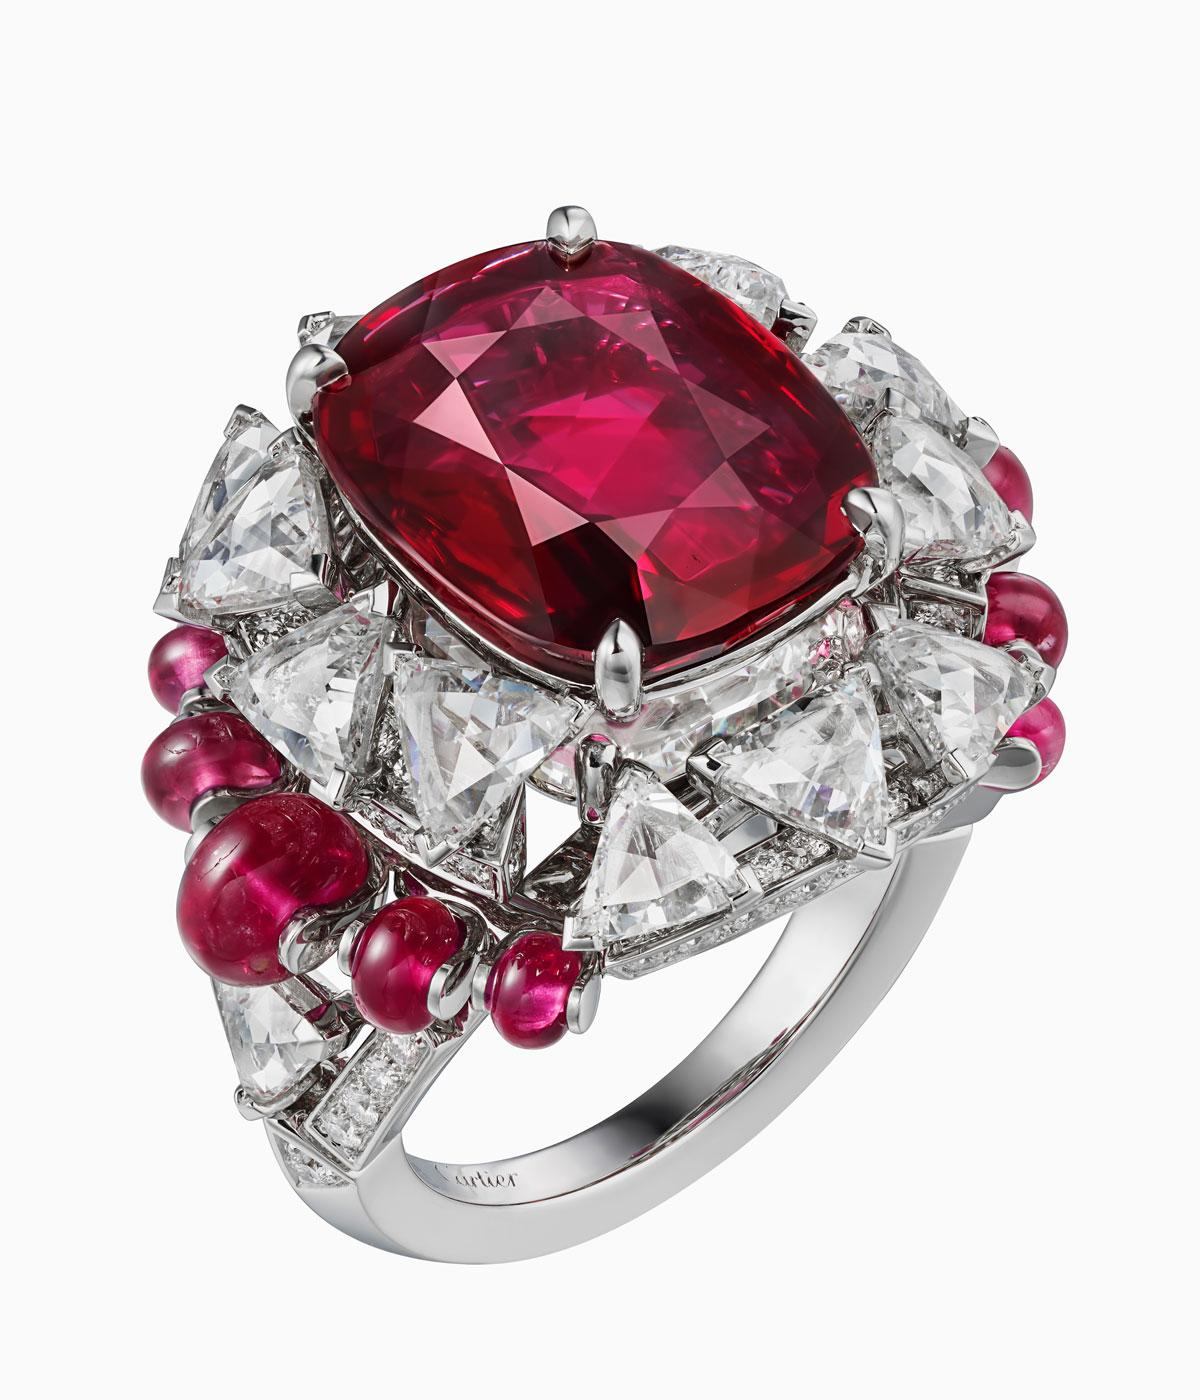 Cartier high jewellery ruby and diamond ring